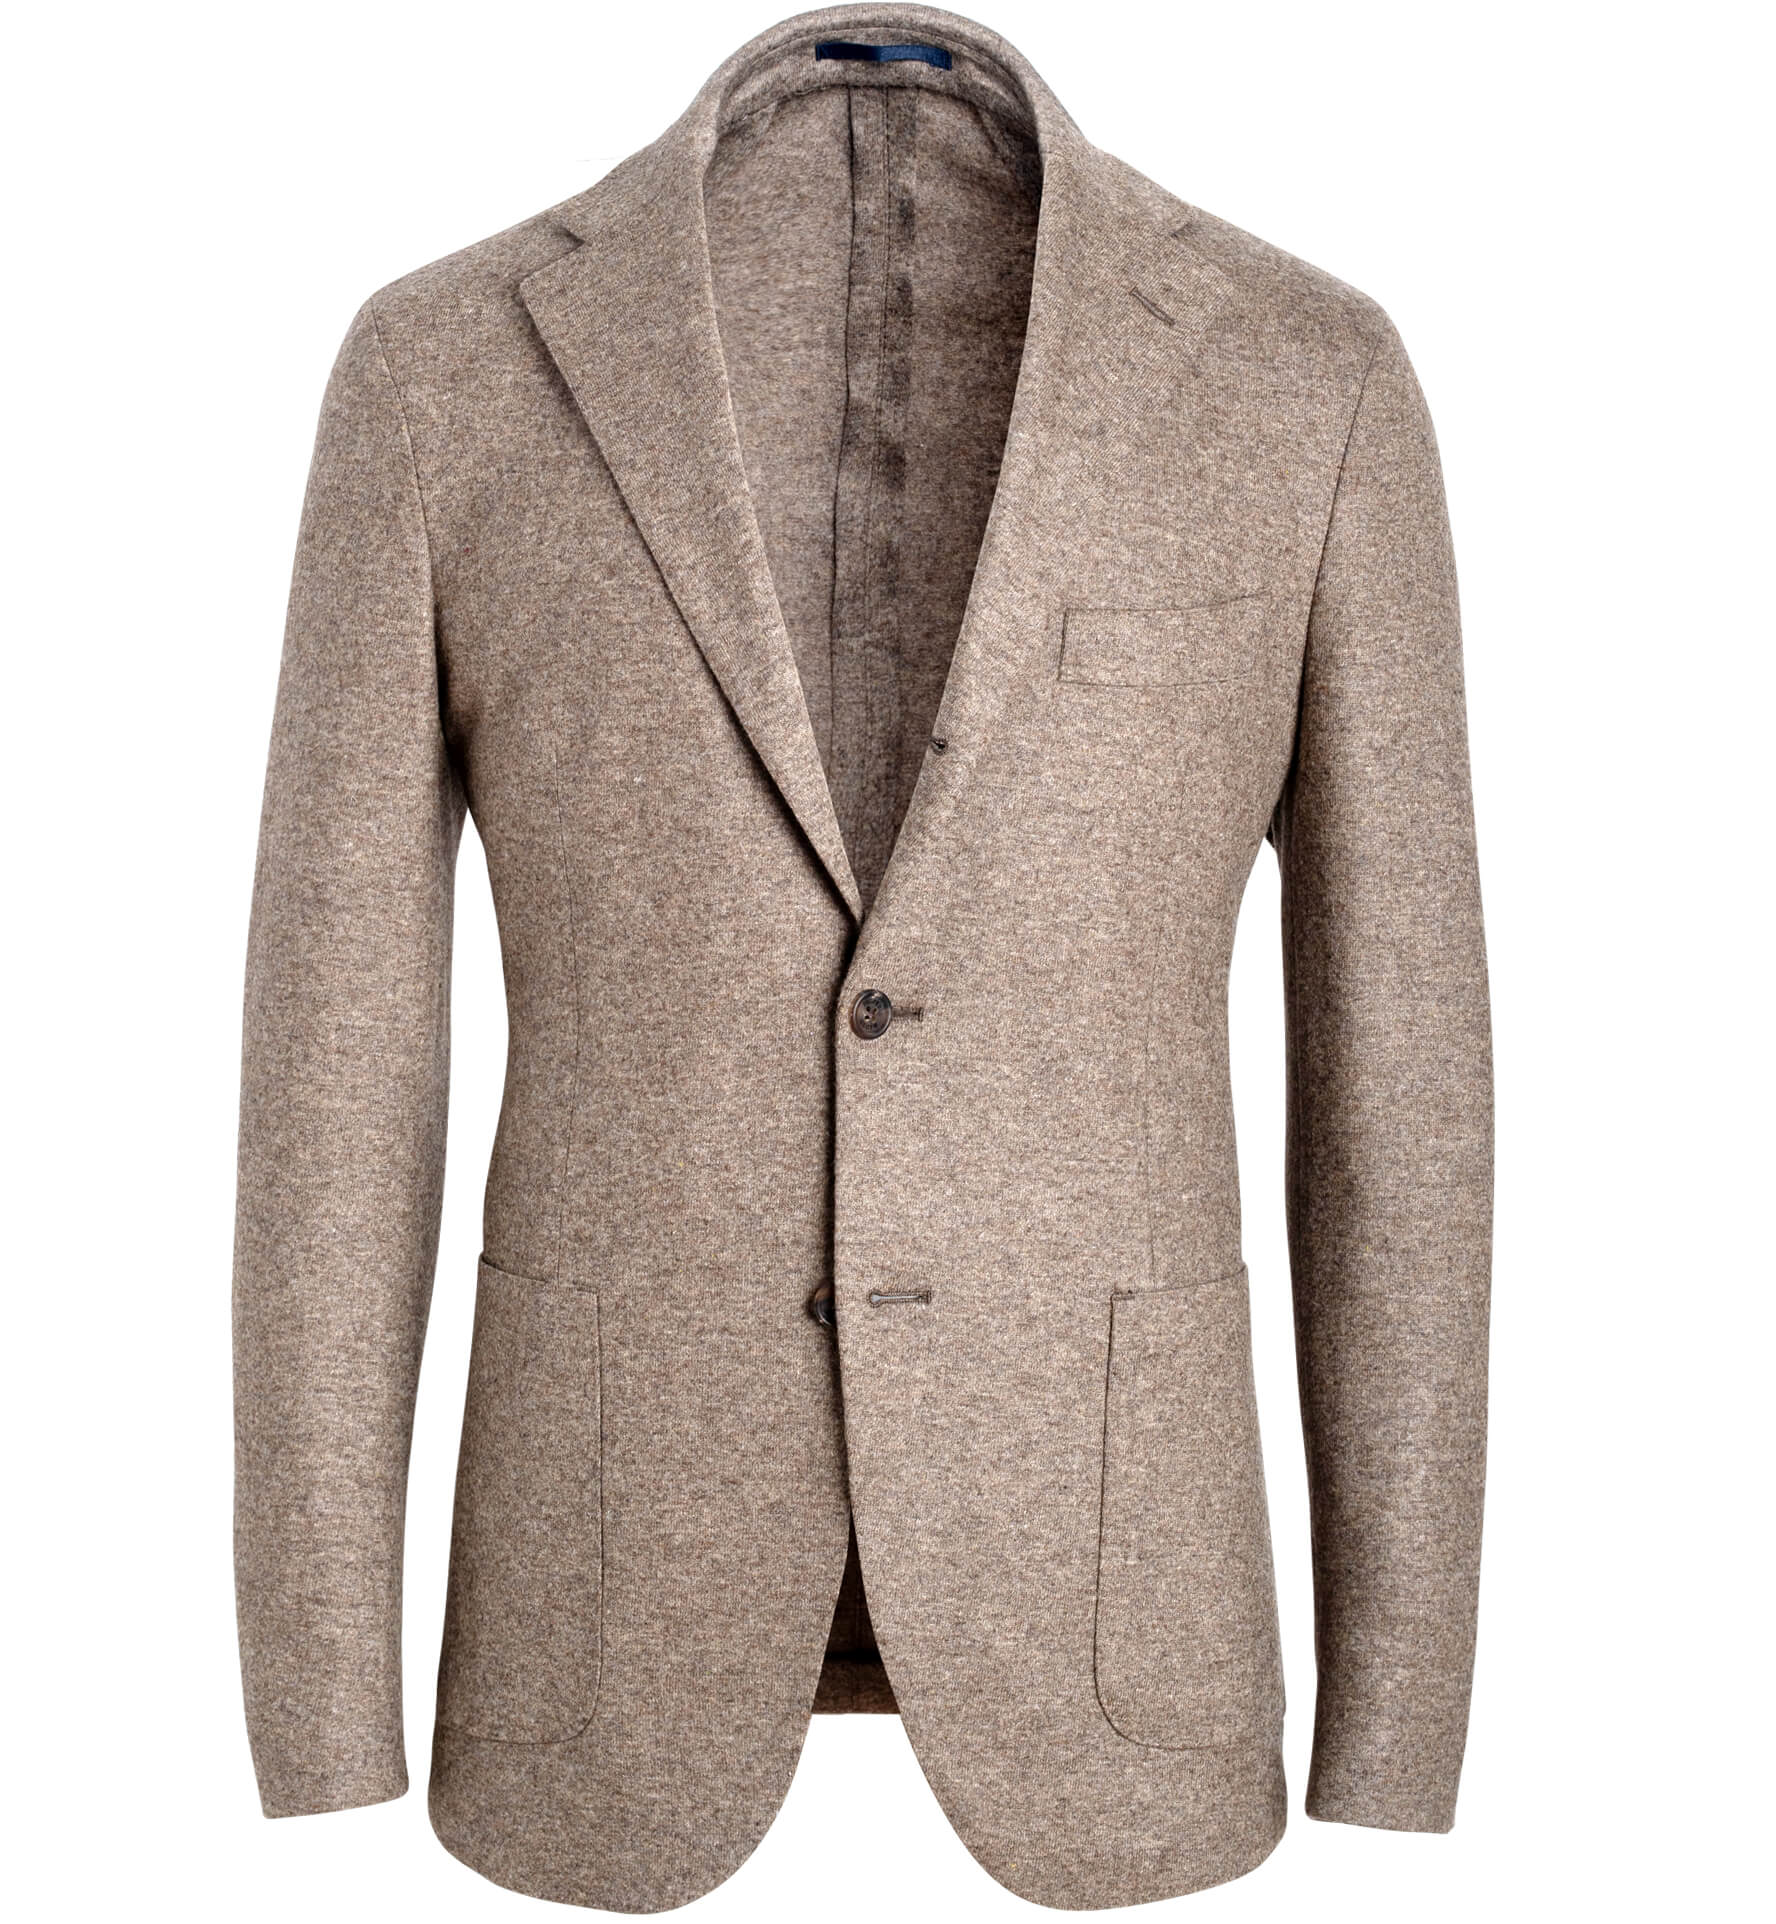 Zoom Image of Waverly Taupe Knit Wool Jacket